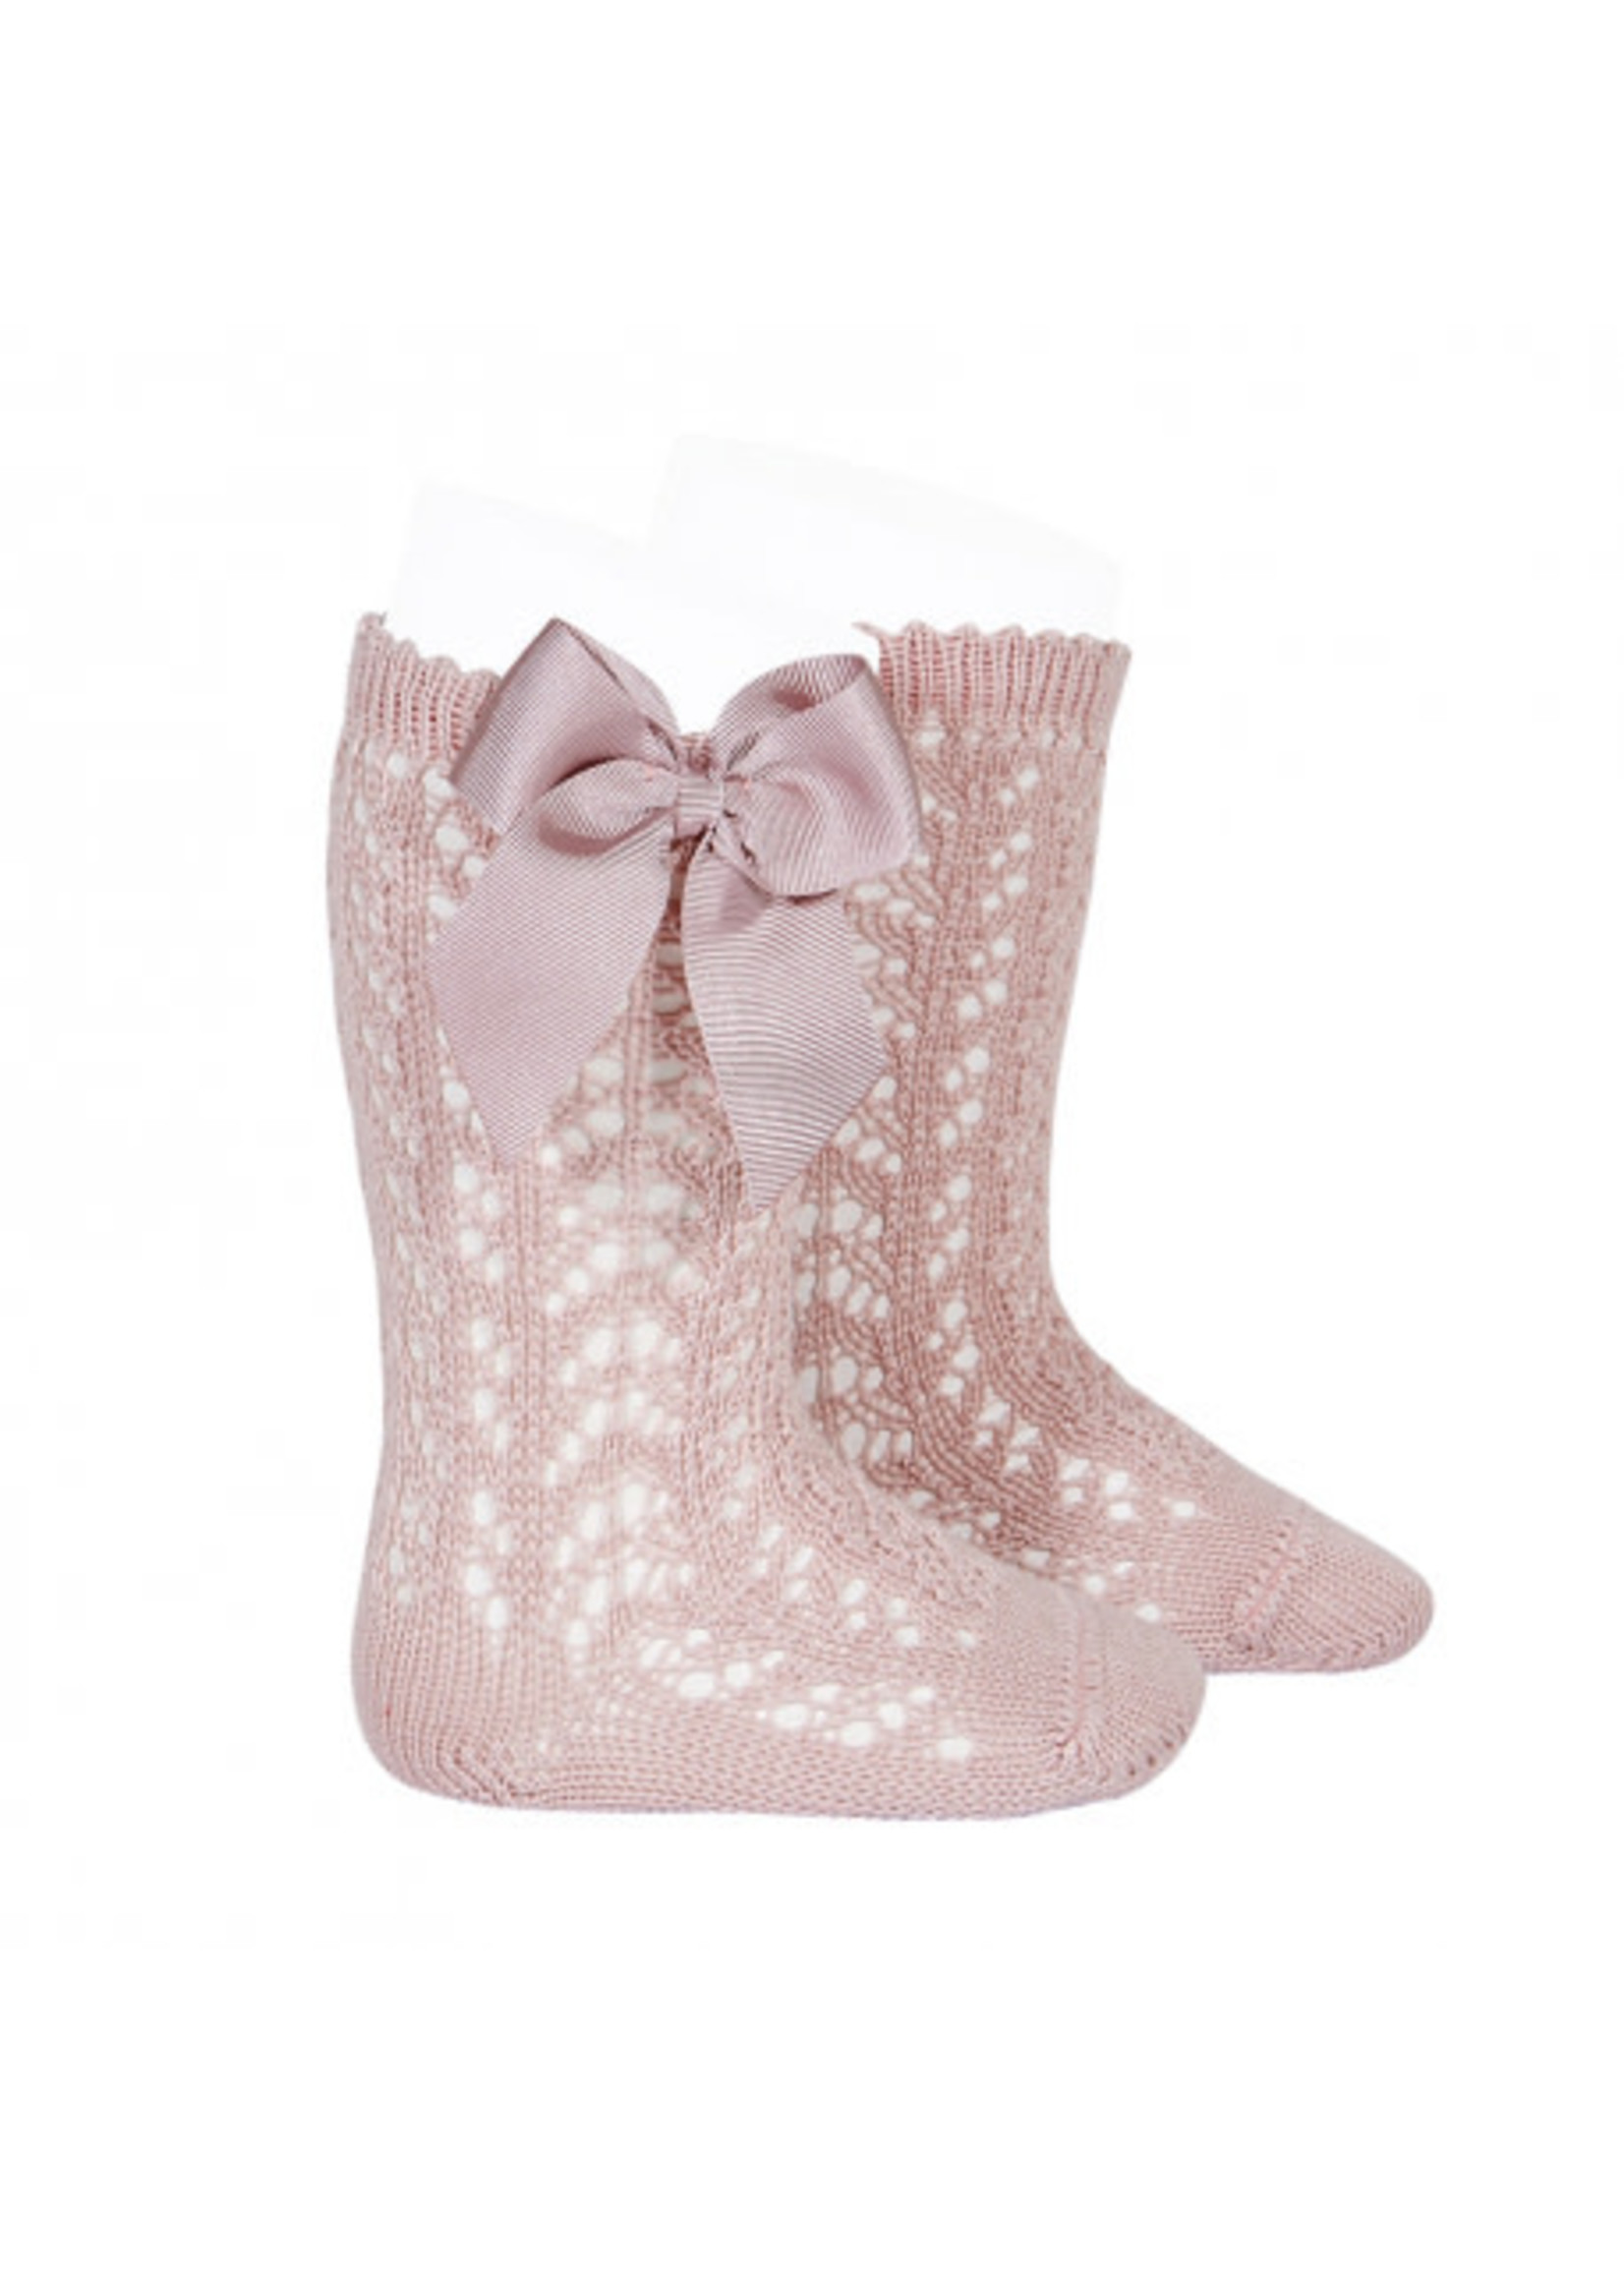 CONDOR CONDOR Kniekous openwork with bow PALE PINK